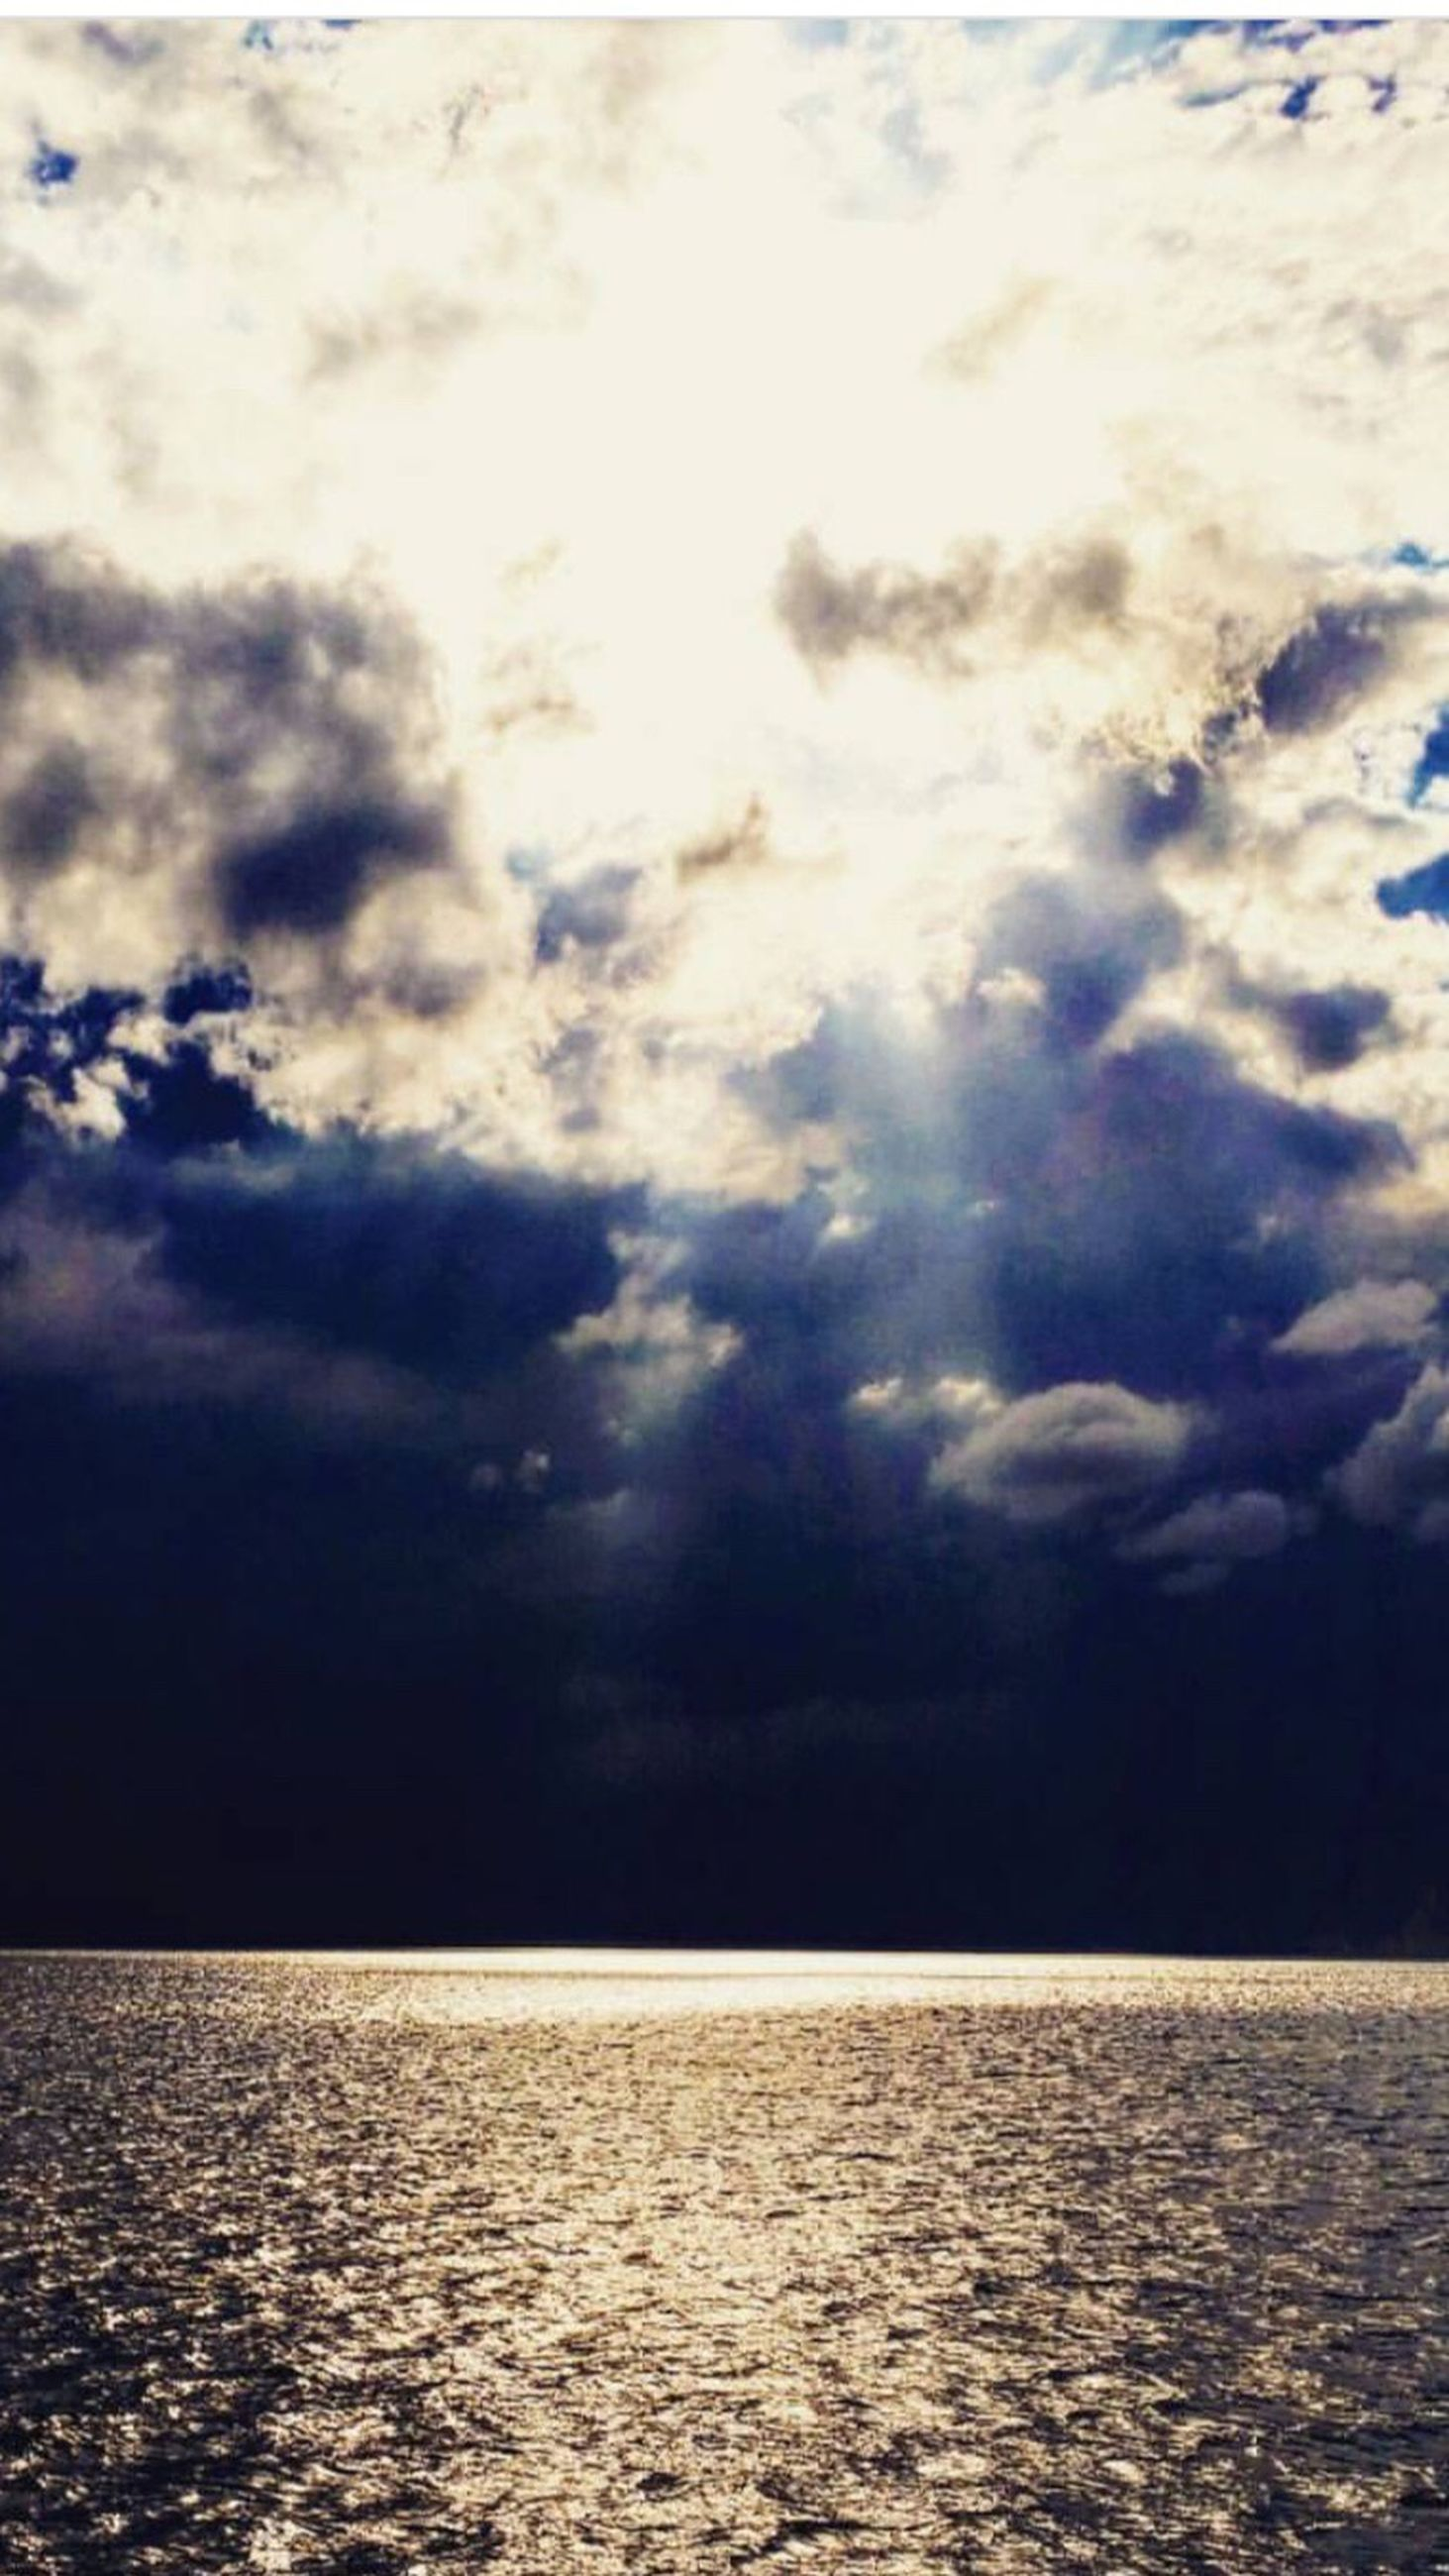 sea, scenics, water, tranquil scene, horizon over water, waterfront, tranquility, beauty in nature, idyllic, nature, sky, cloud, calm, majestic, seascape, rippled, cloud - sky, blue, non-urban scene, ocean, remote, day, outdoors, dramatic sky, cloudscape, cloudy, tourism, no people, atmospheric mood